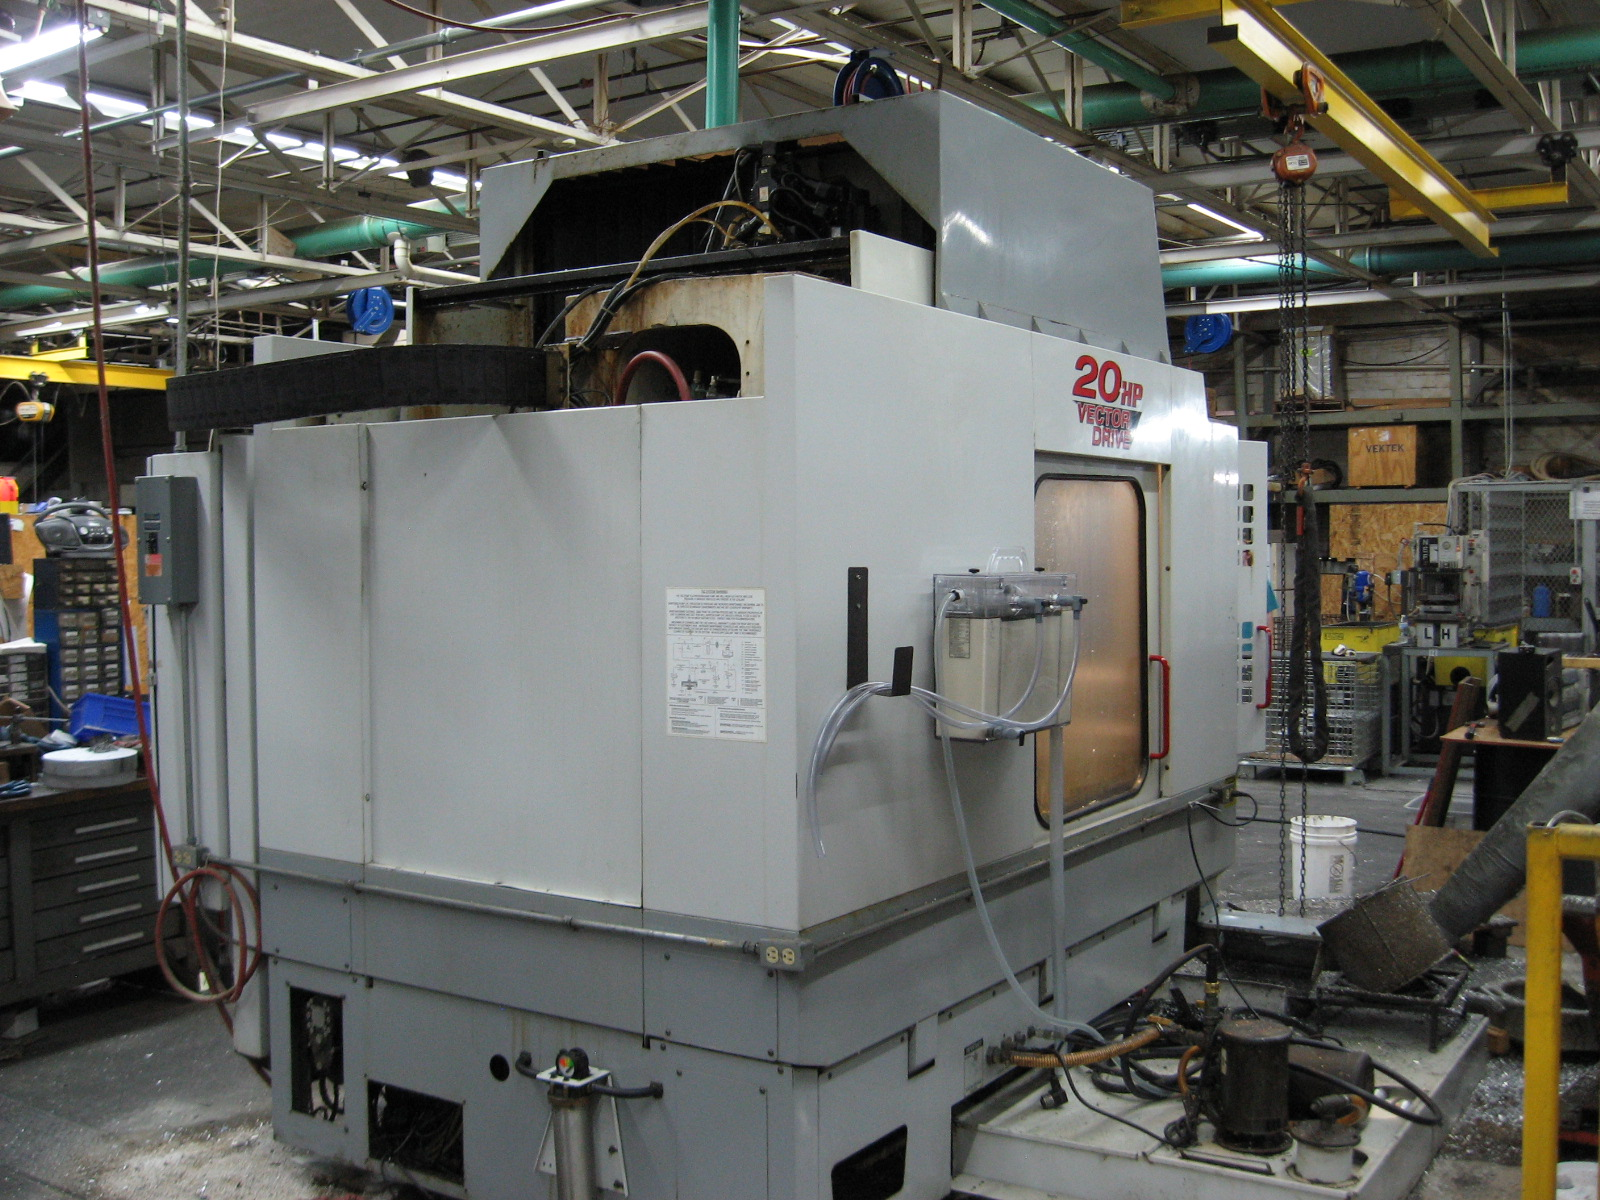 HAAS2000 Haas HS-1RP, Full 4th Axis, 10K RPM Spindle, Tons of spare parts